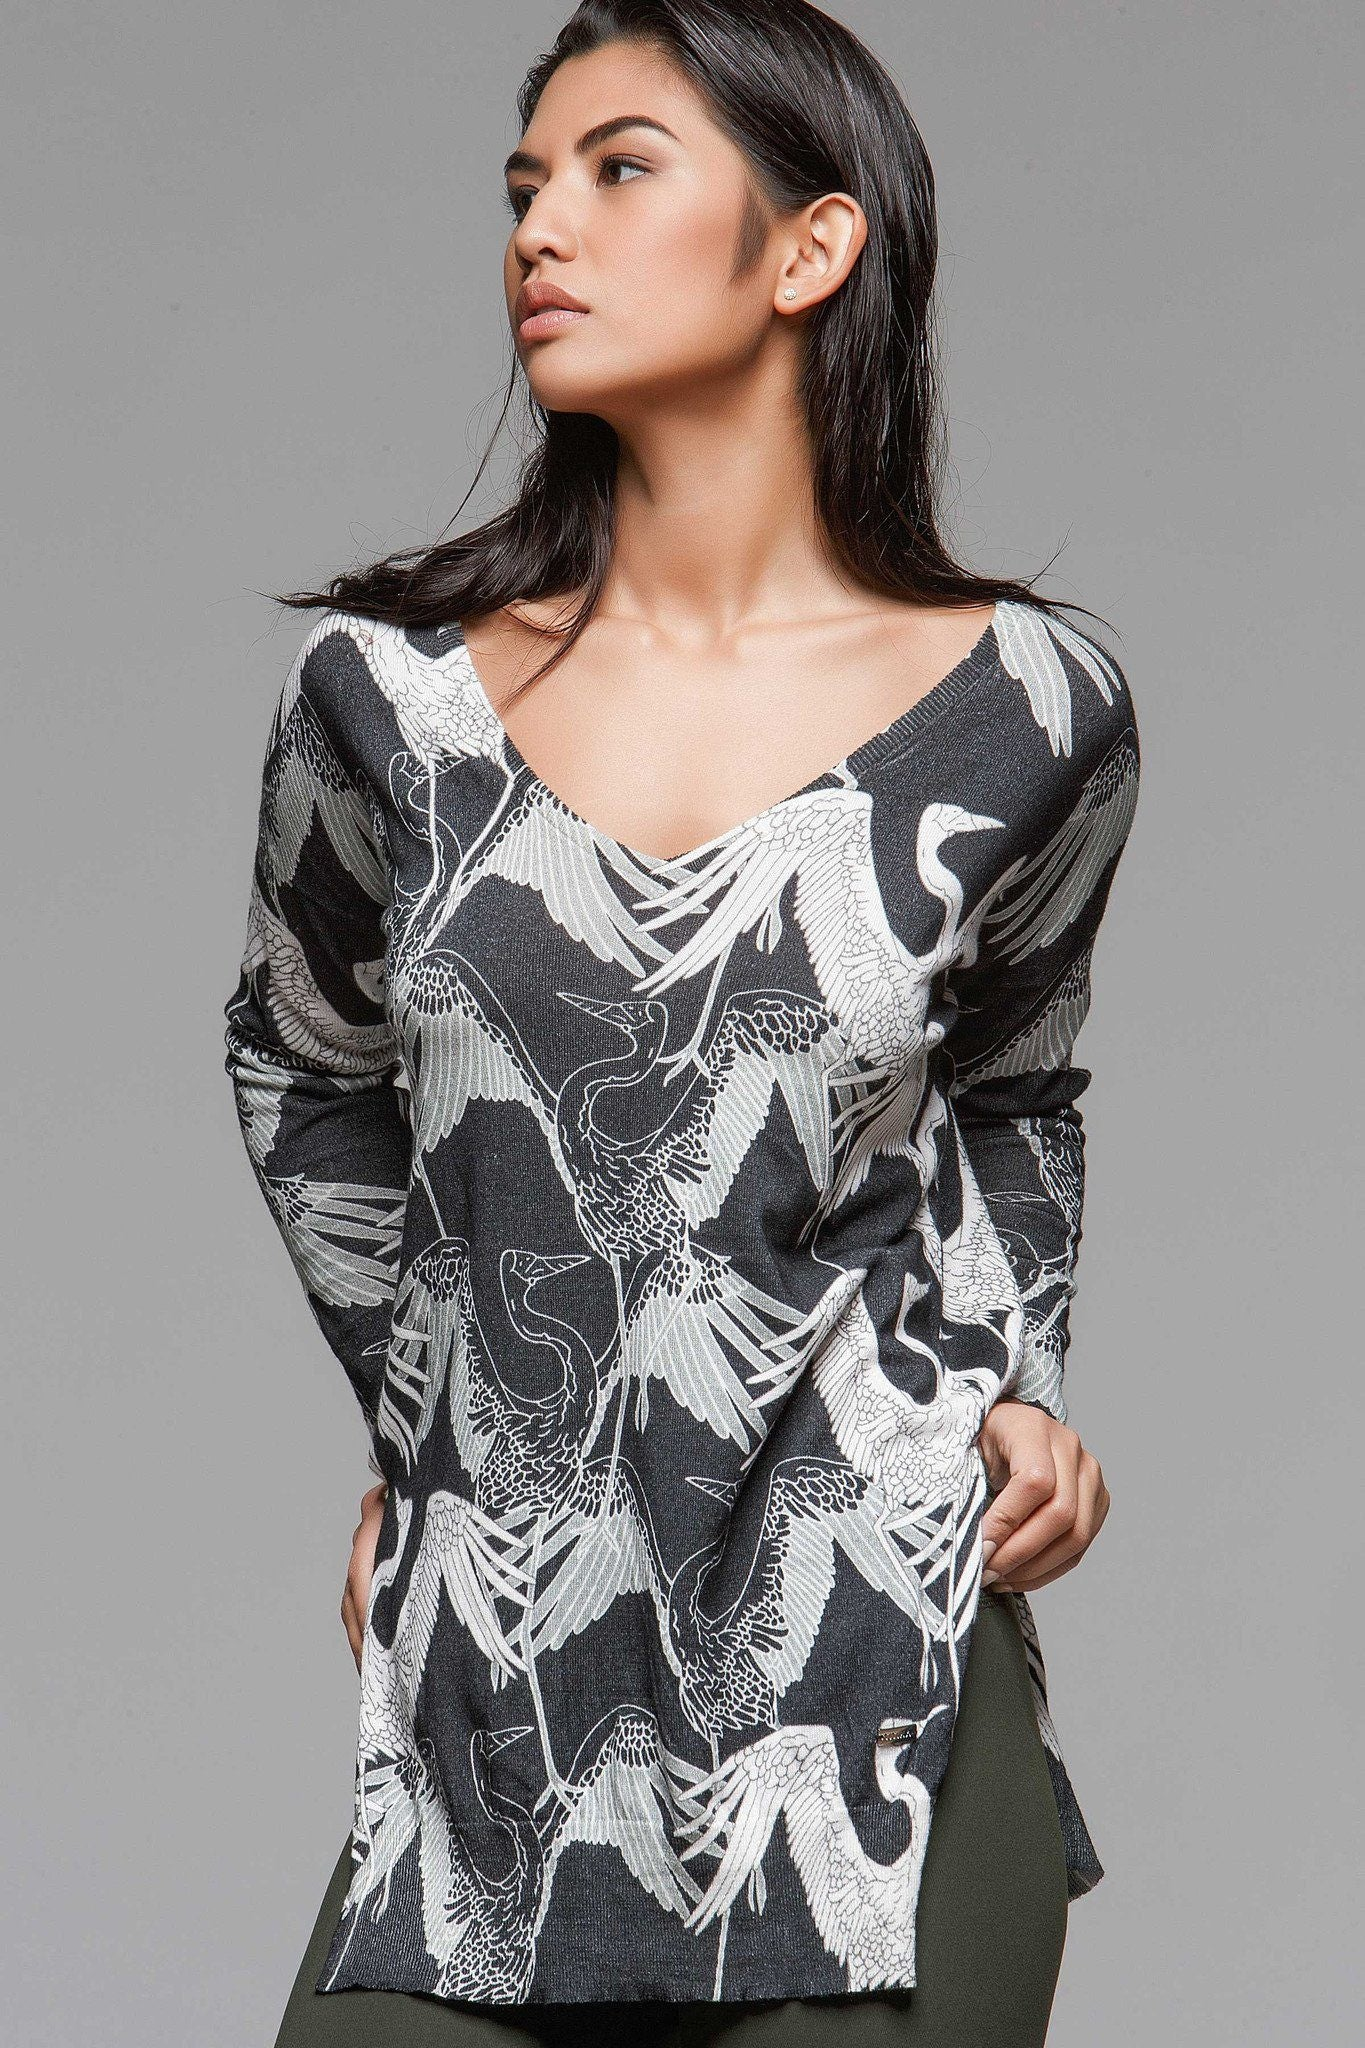 Graphic Deep V Sweater - Stork